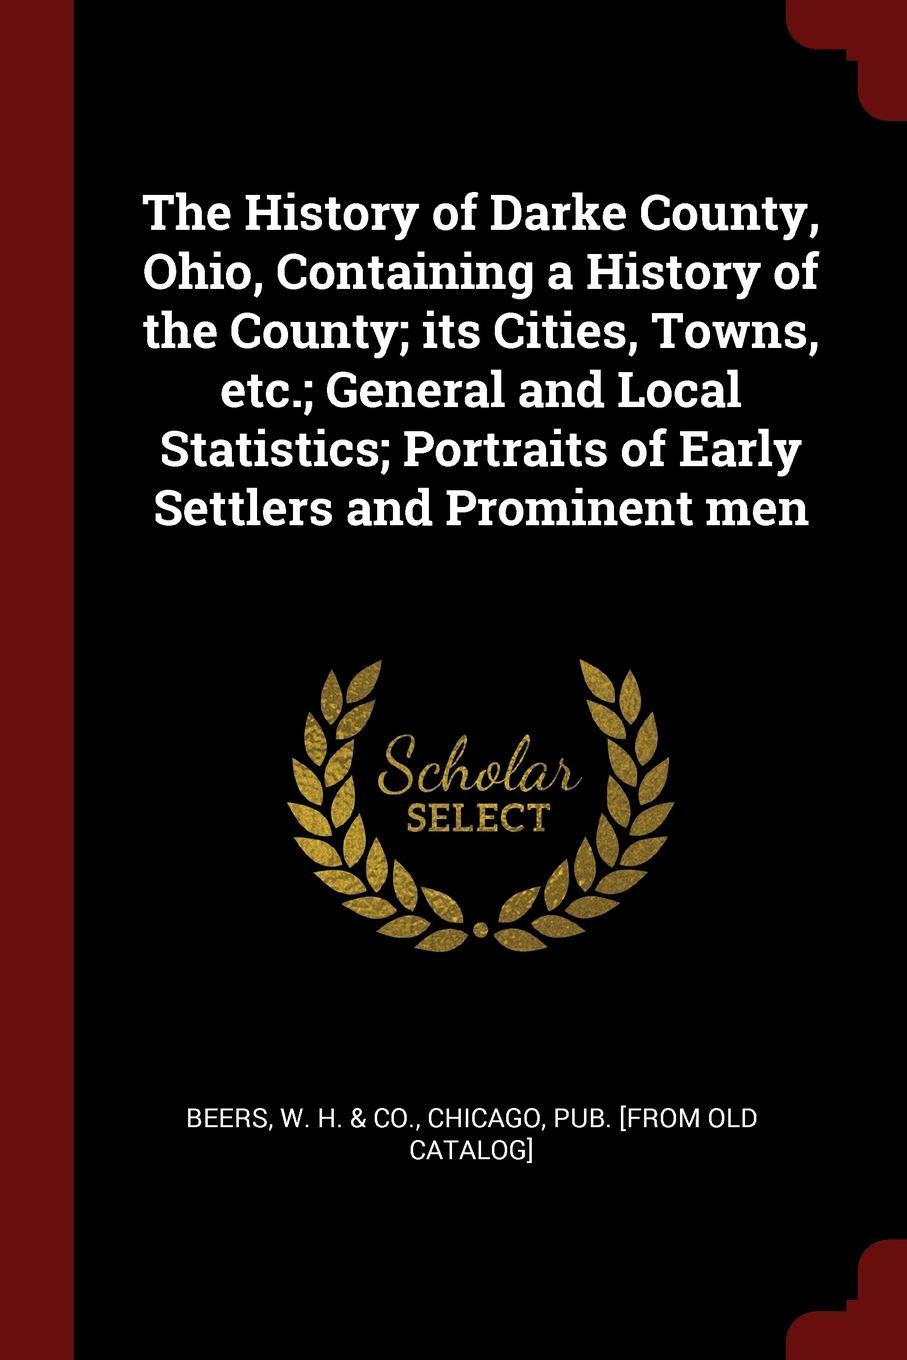 The History of Darke County, Ohio, Containing a History of the County; its Cities, Towns, etc.; General and Local Statistics; Portraits of Early Settlers and Prominent men